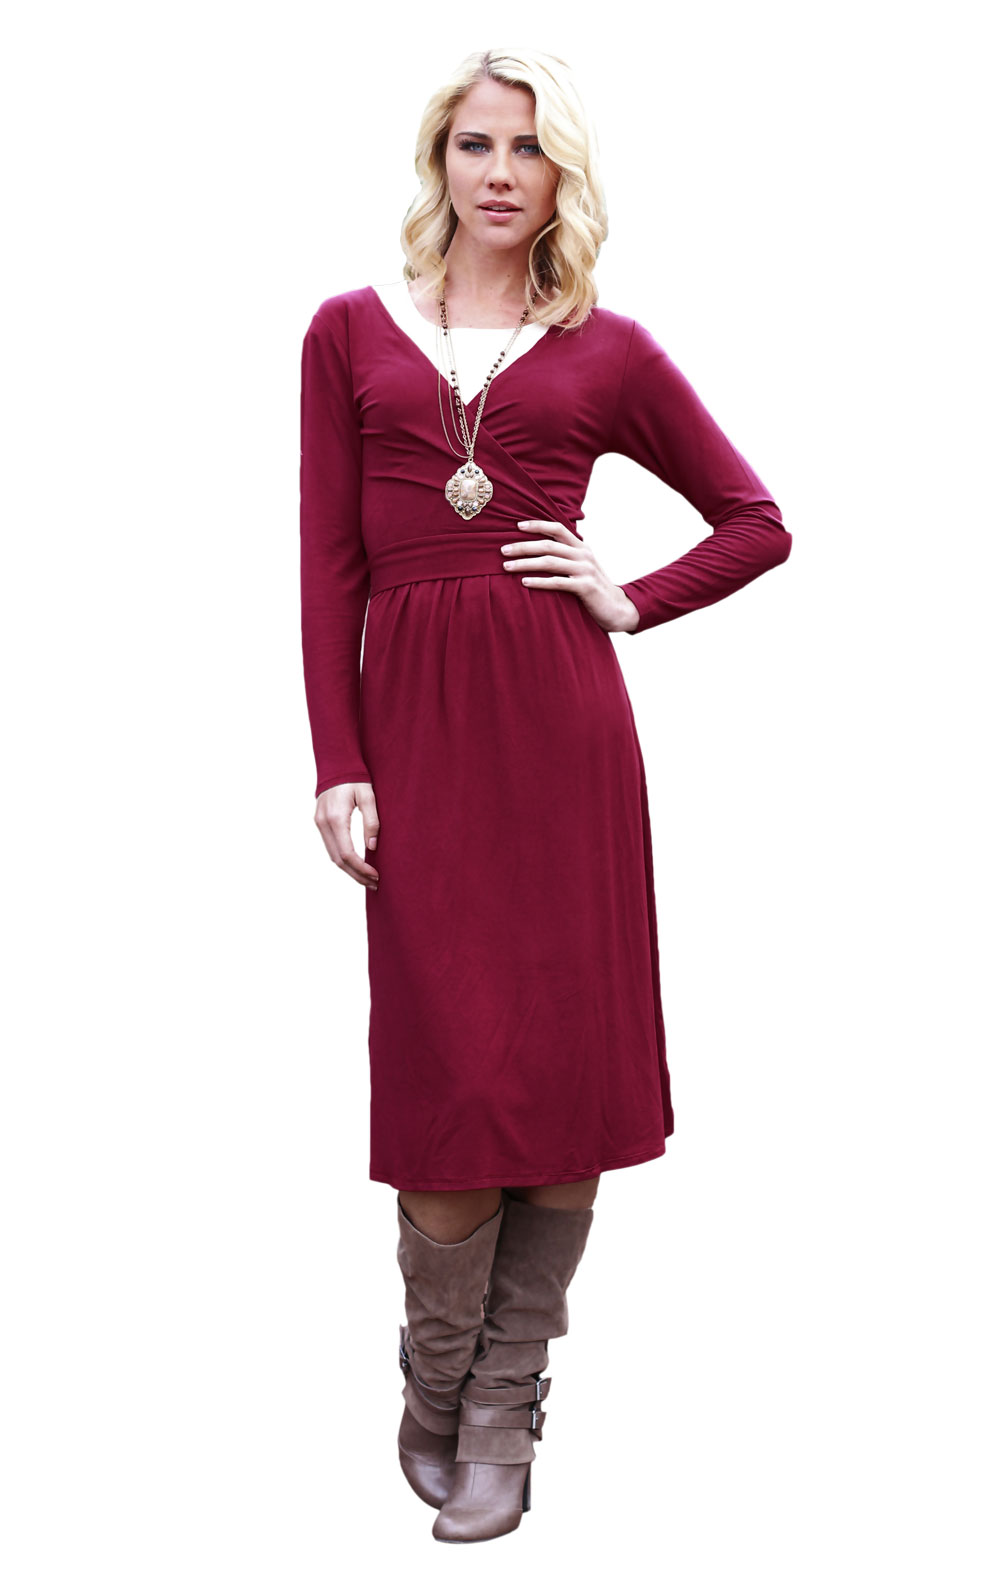 Modest Dresses: &quotKristy 2 Long-Sleeve&quot Modest Dress in Burnt Red